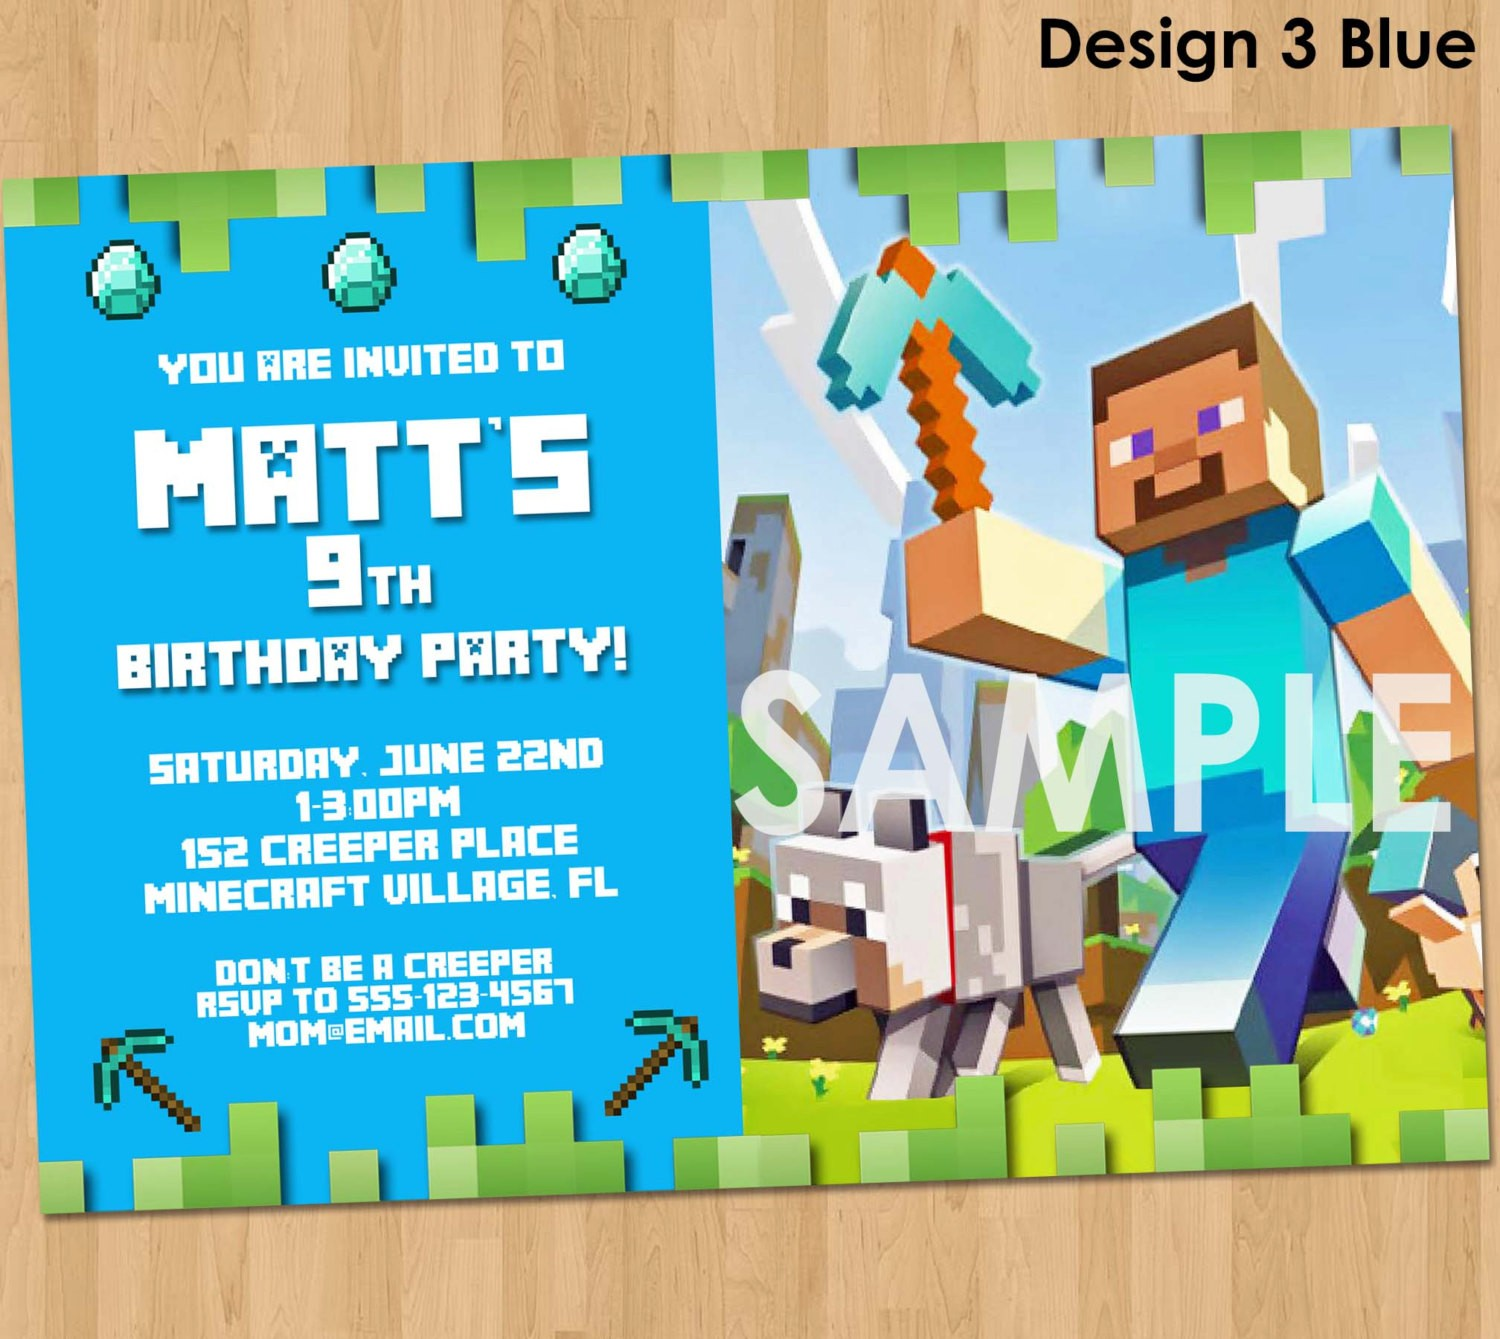 minecraft birthday background ; 2014%2520party%2520favors%2520-%2520minecraft%2520invitation%2520%2520minecraft%2520birthday-f49512